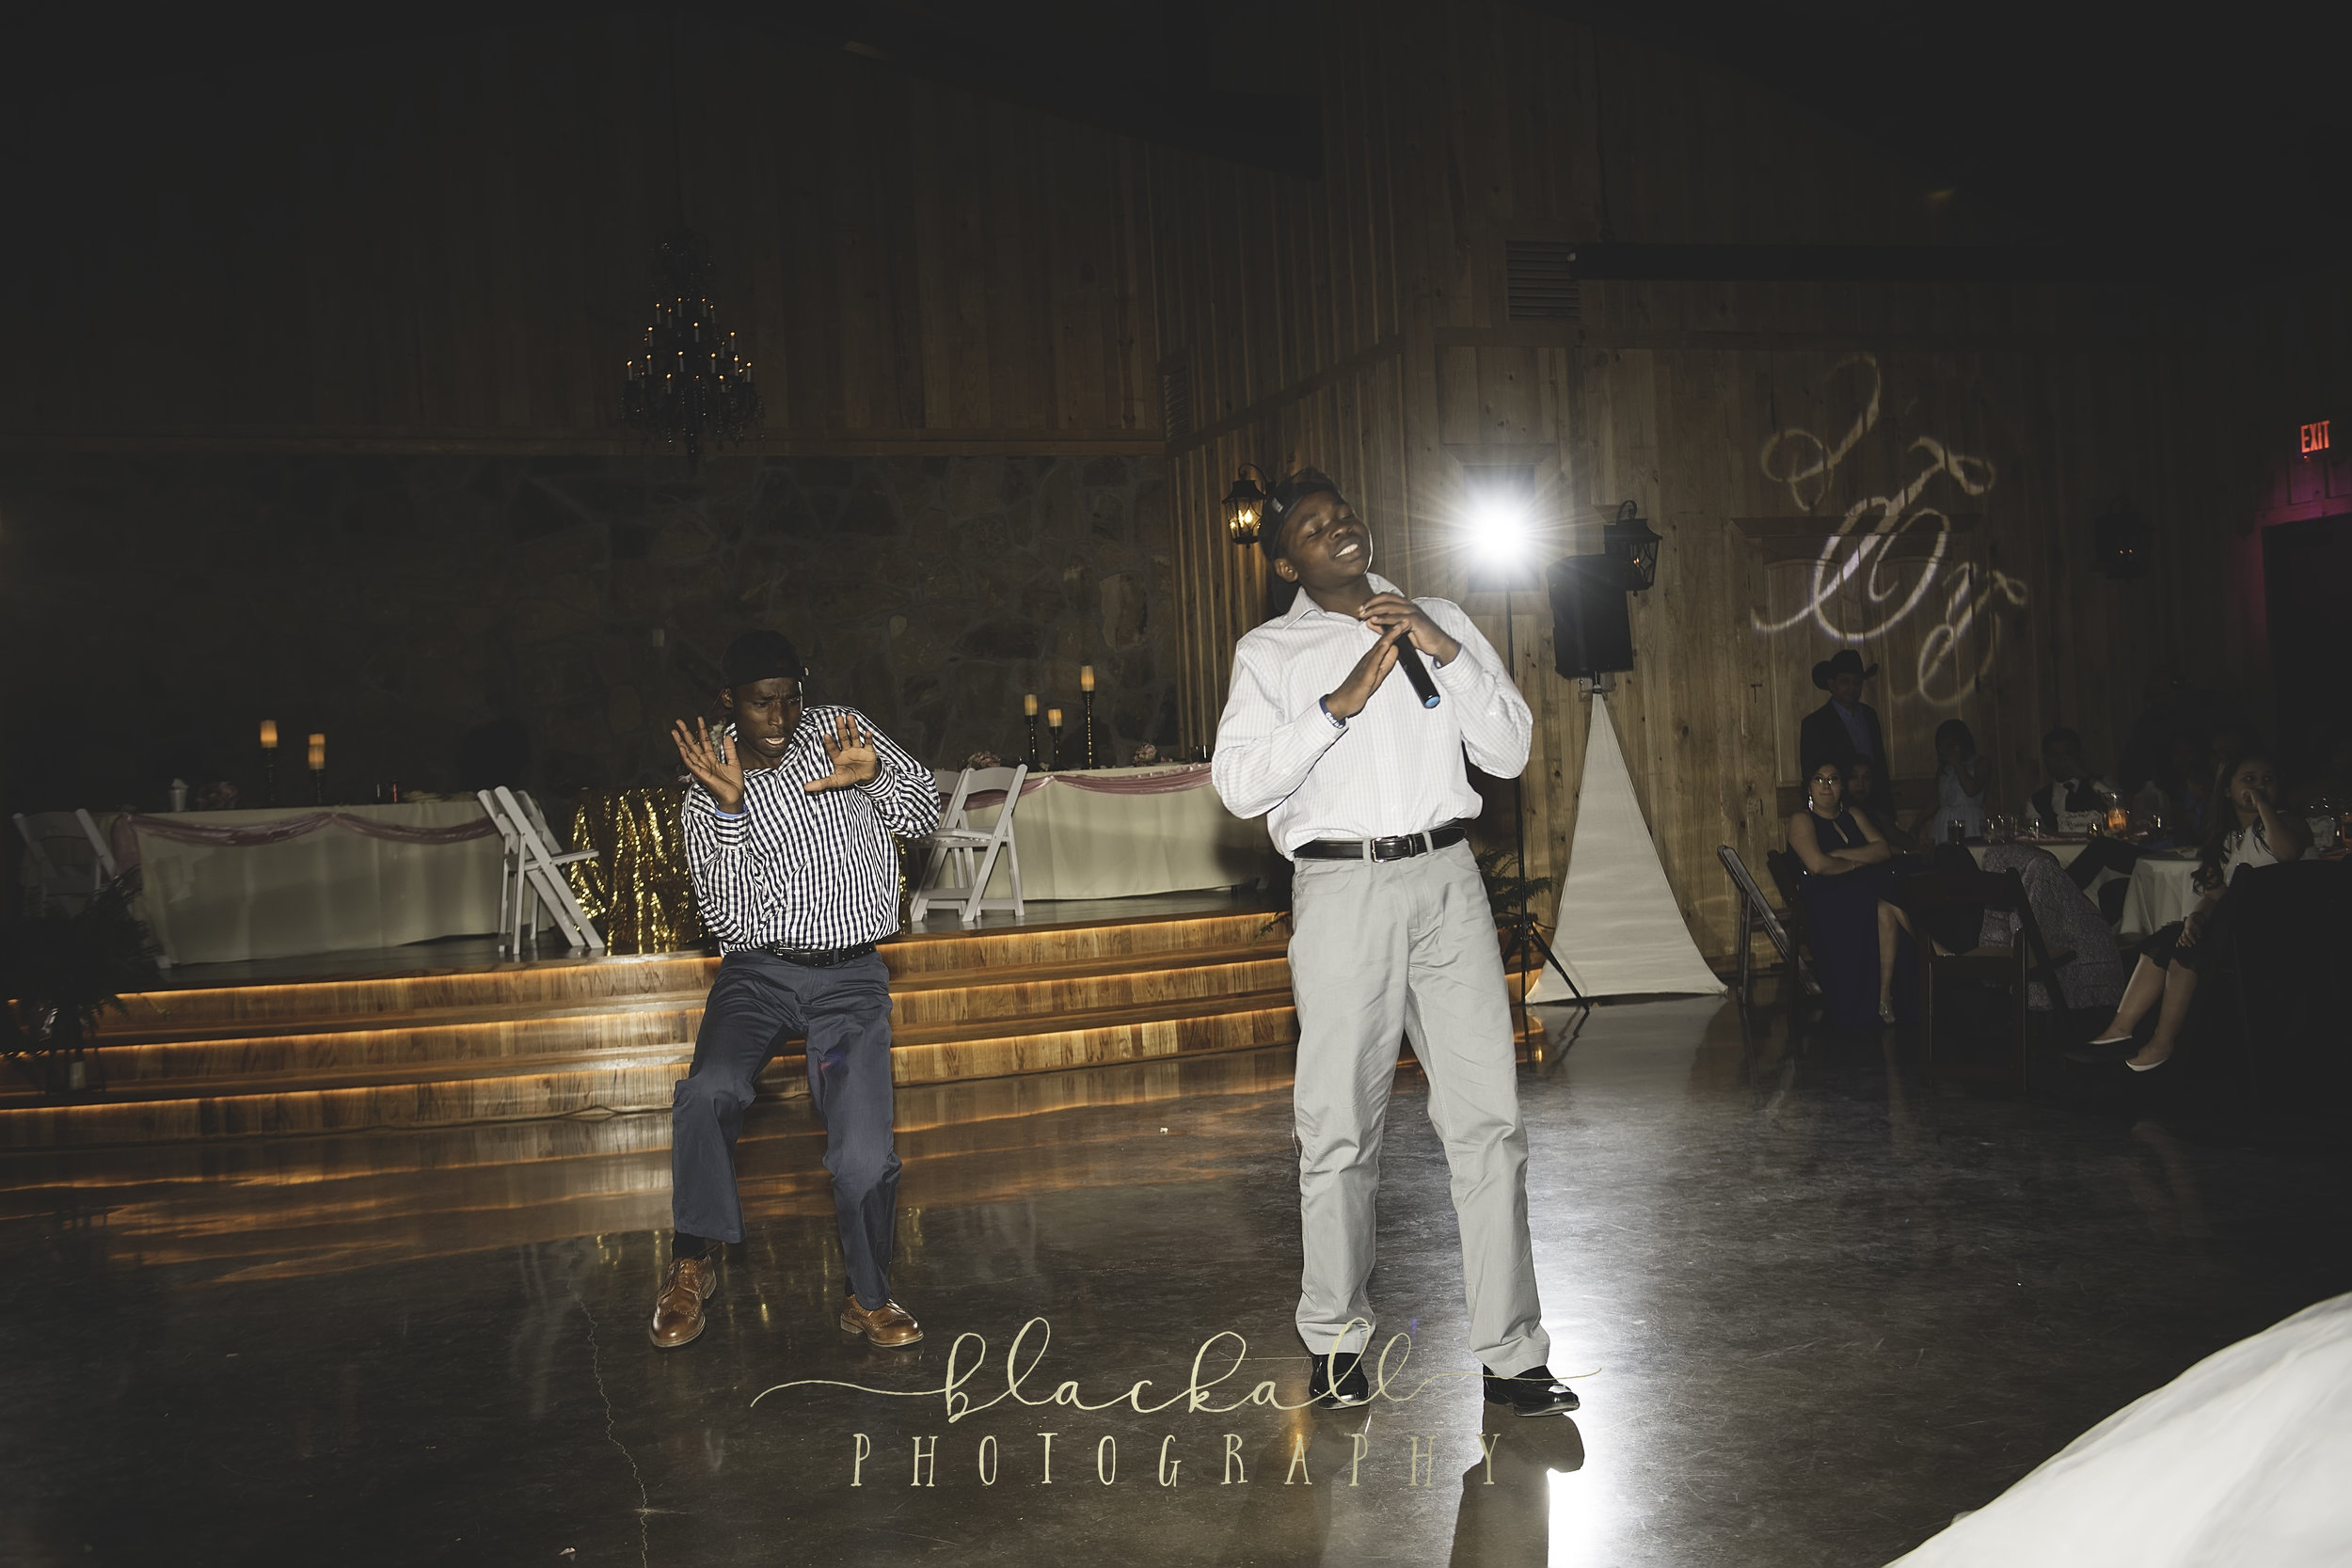 Such an honor to watch these two guys! They gifted the bride + groom with a special ugandan dance!